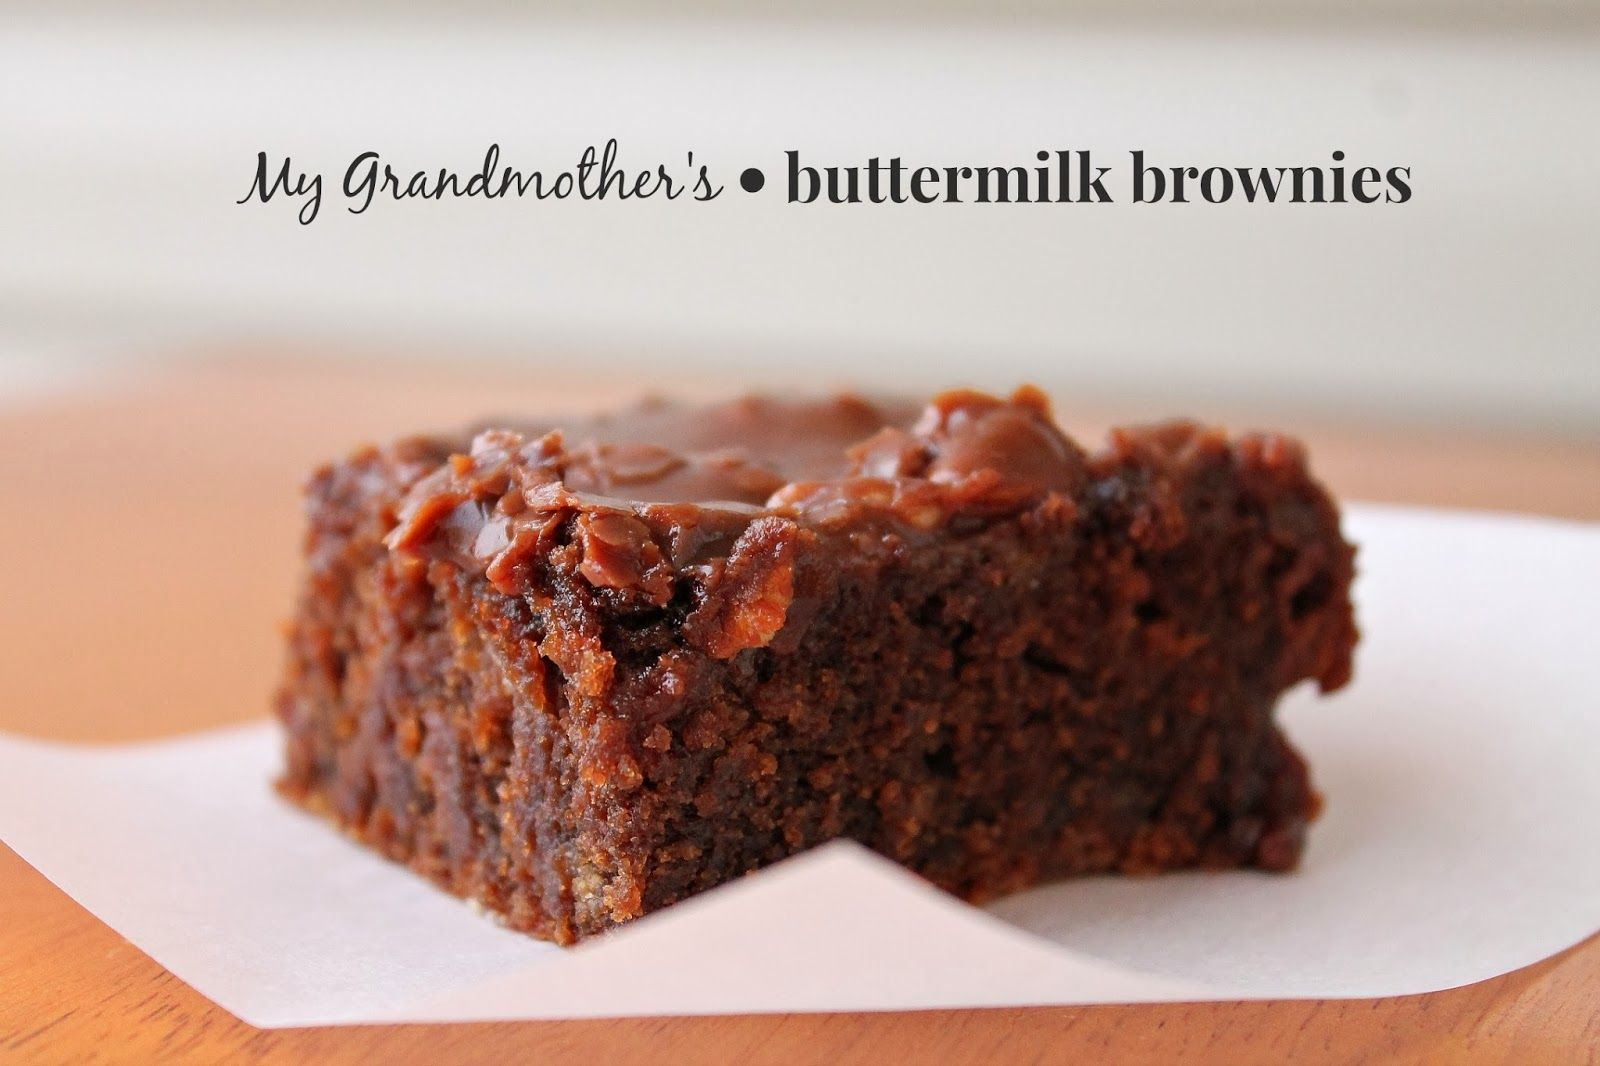 Louisiana Bride My Grandmother S Buttermilk Brownies Buttermilk Brownies Buttermilk Recipes Brownie Recipes